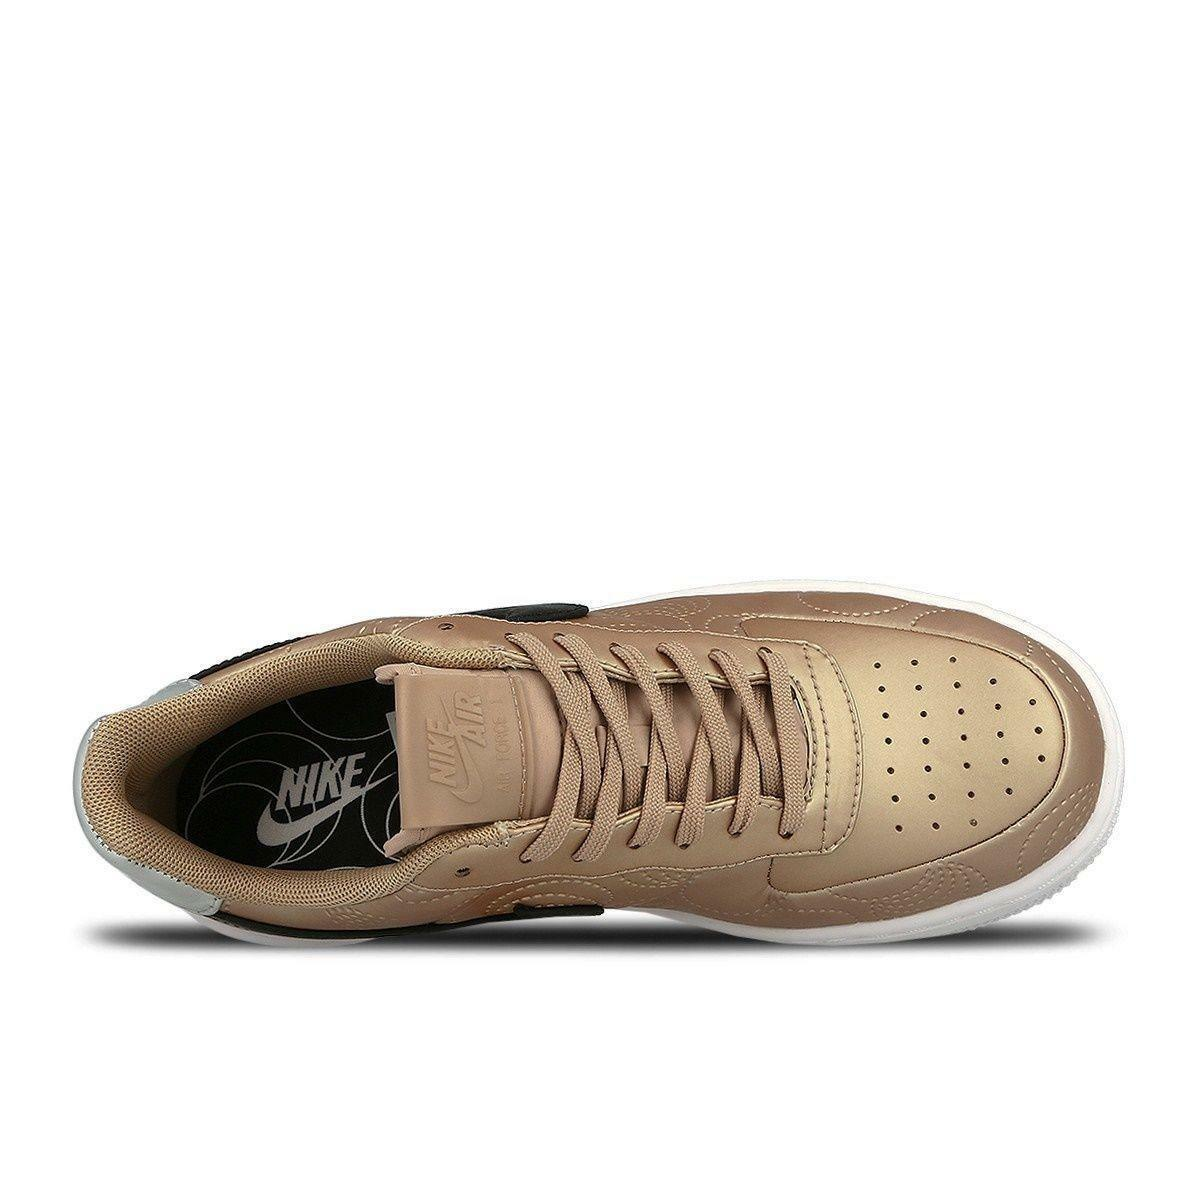 les femmes upstep nike synthétiques af1 formateurs 874141900 synthétiques nike lotc qs or 6f0ae9